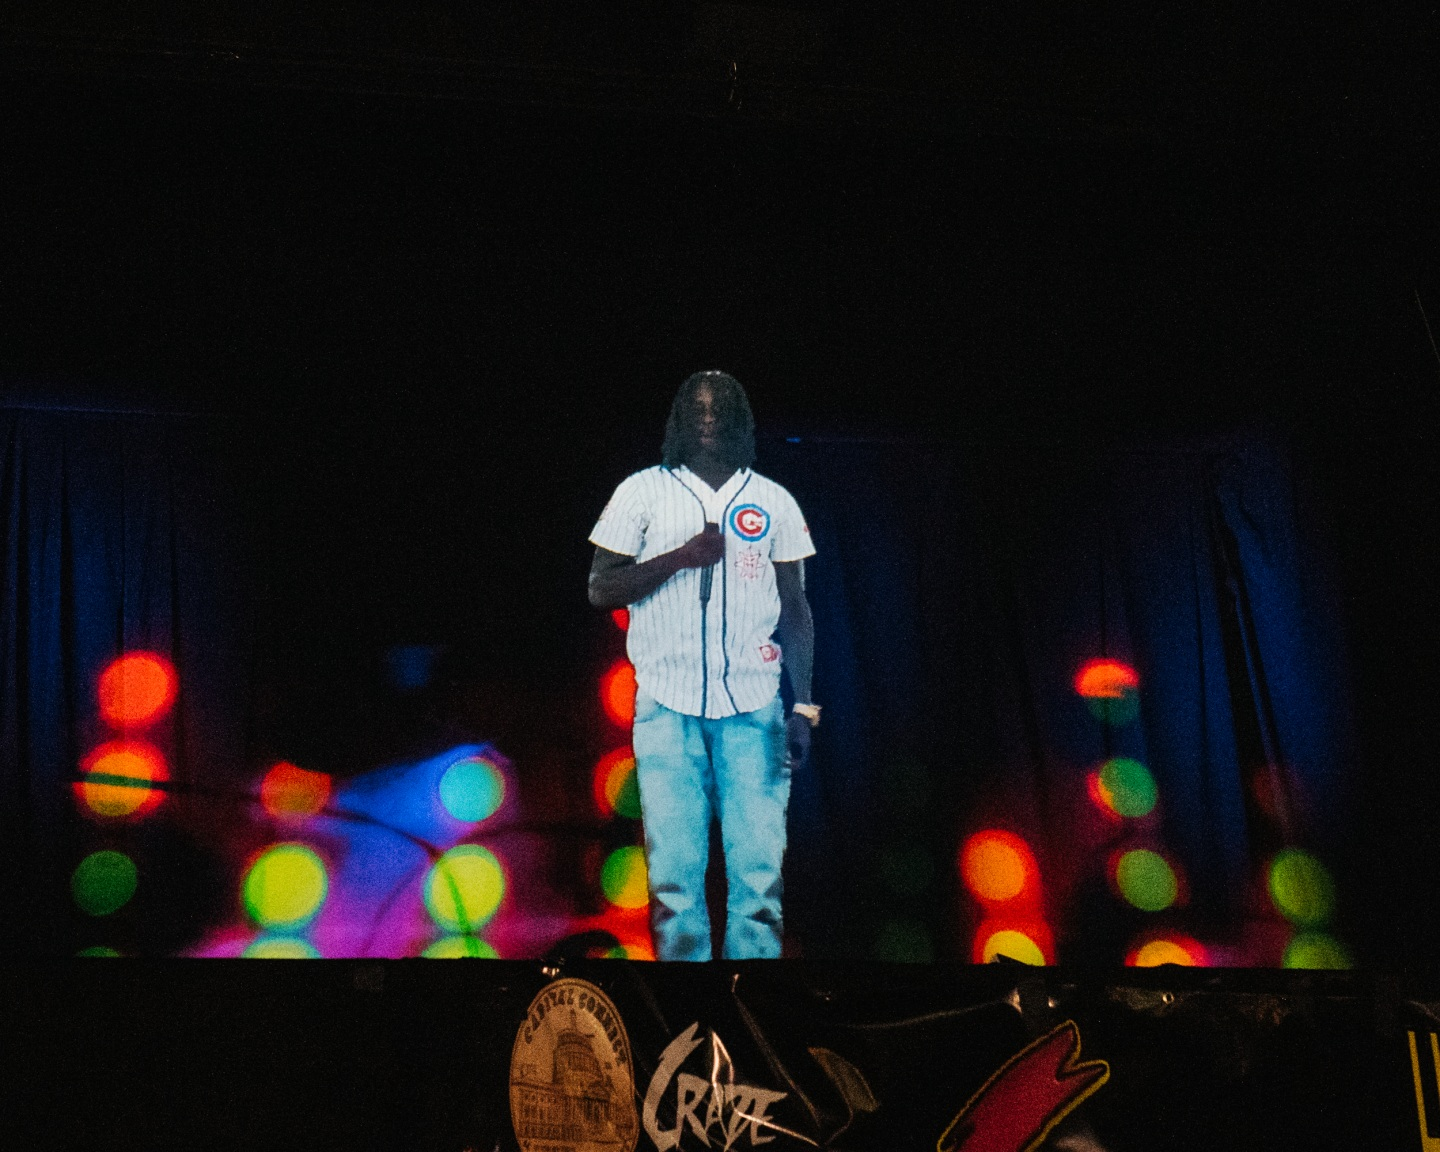 This Is What A Party With Chief Keef's Hologram Looks Like